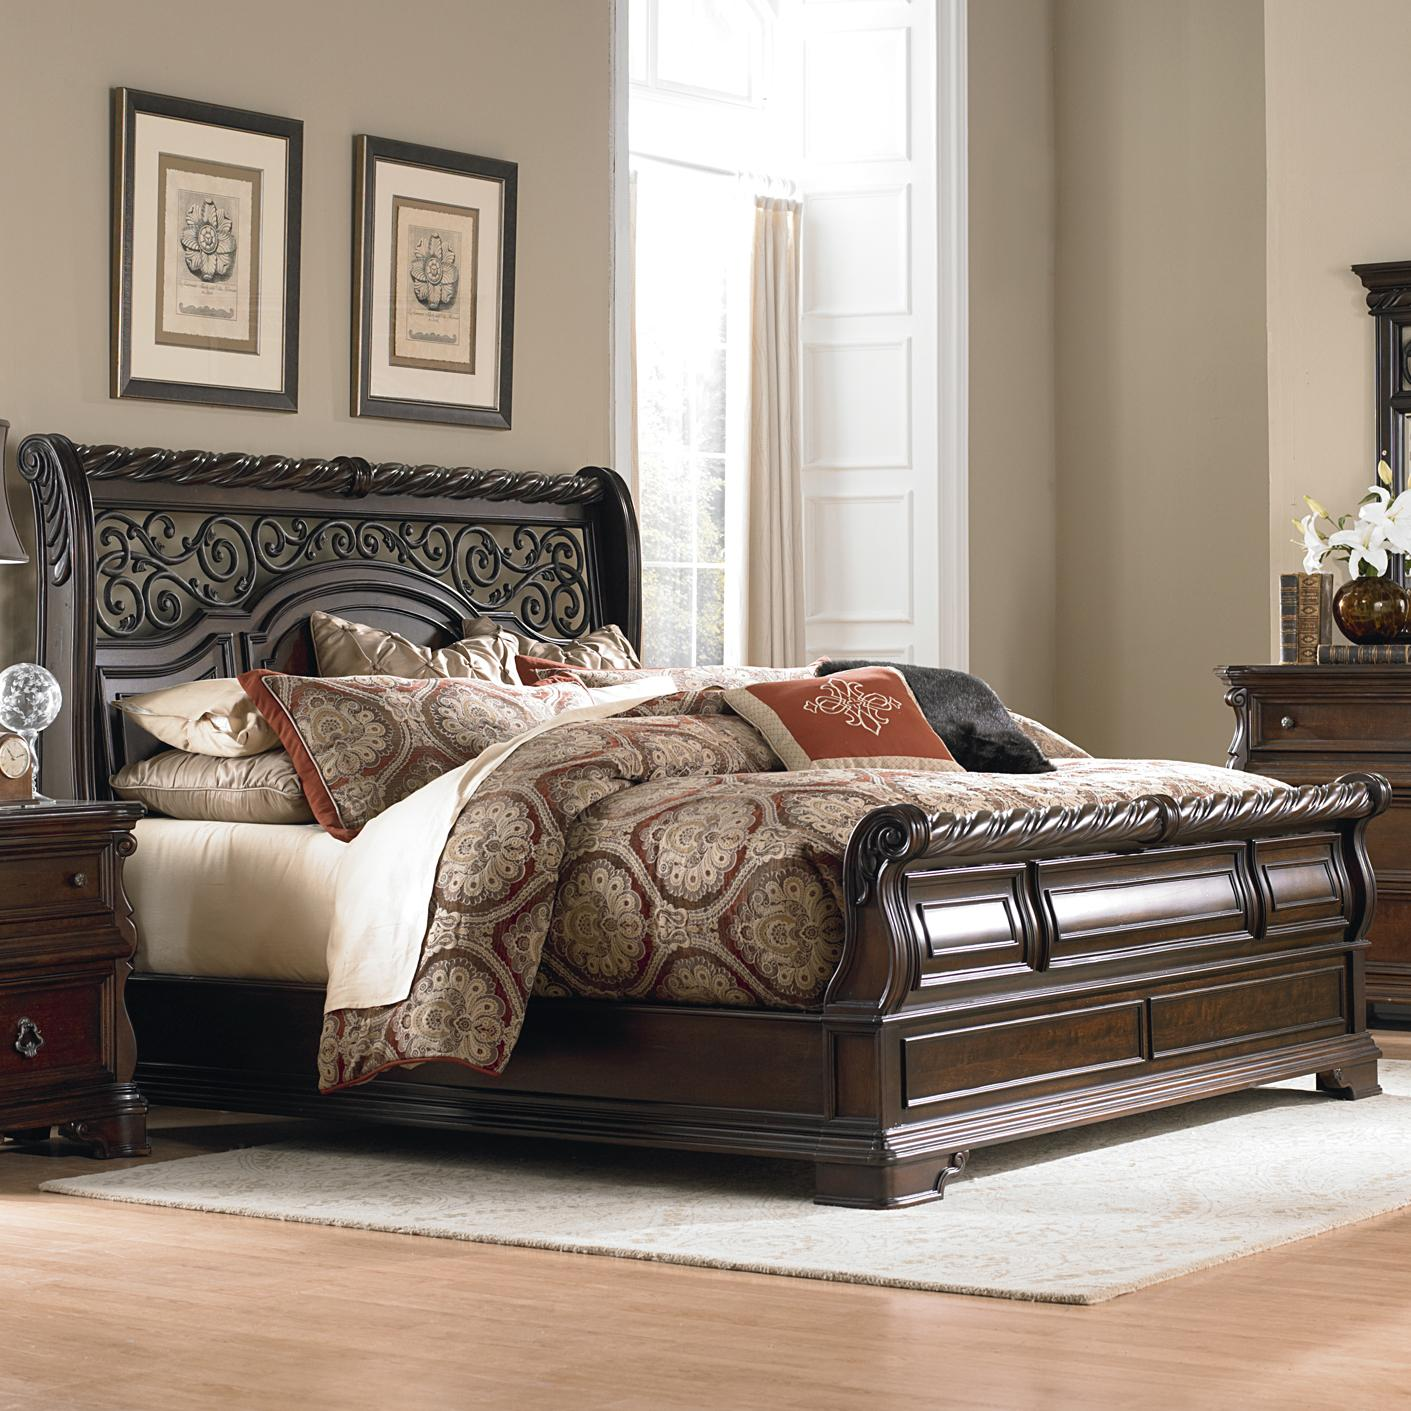 Liberty furniture arbor place queen traditional sleigh bed for To place furniture in